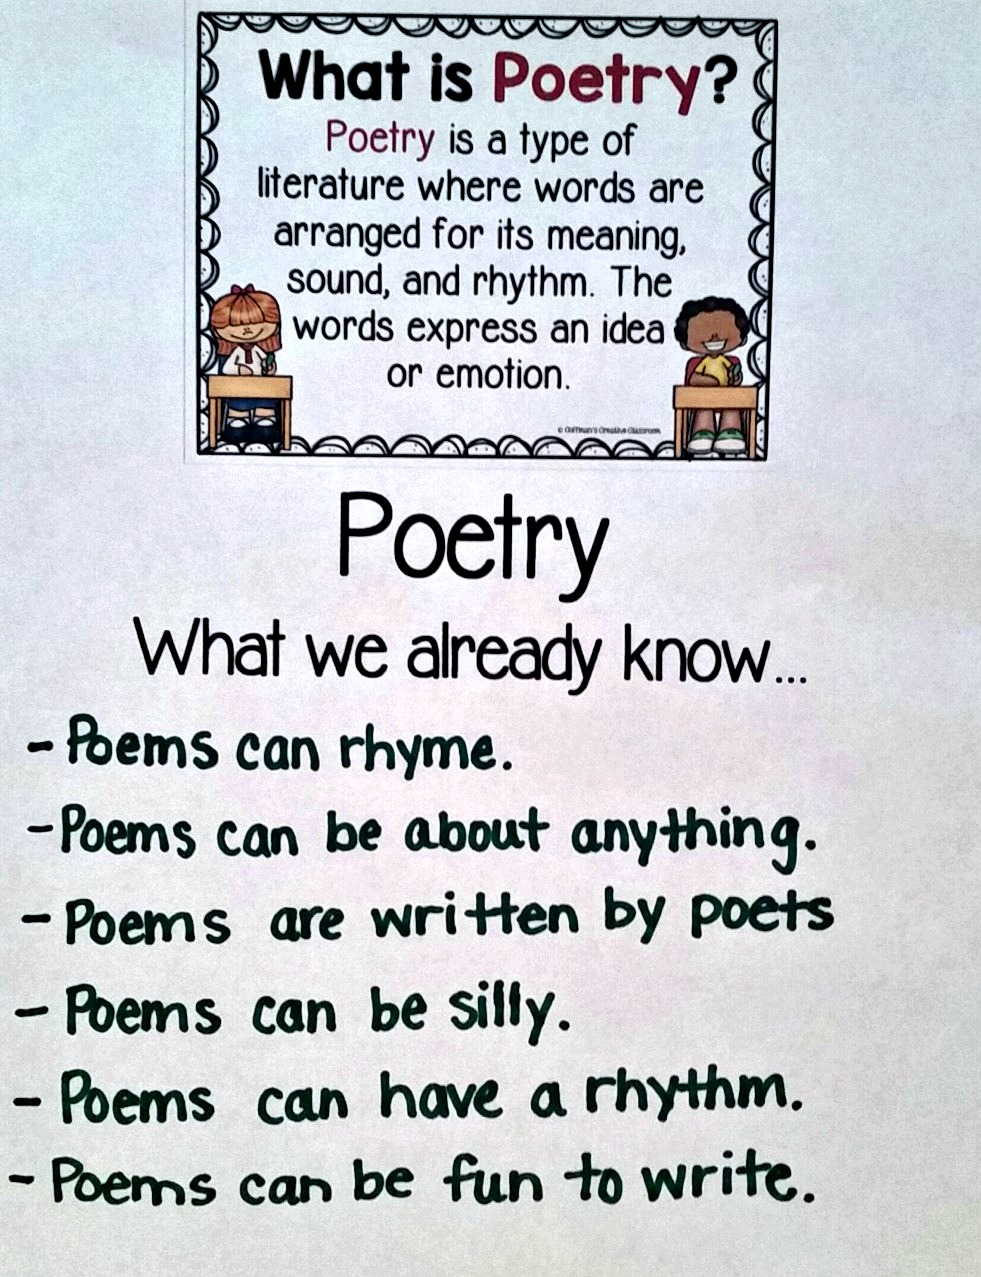 What is poetry 11